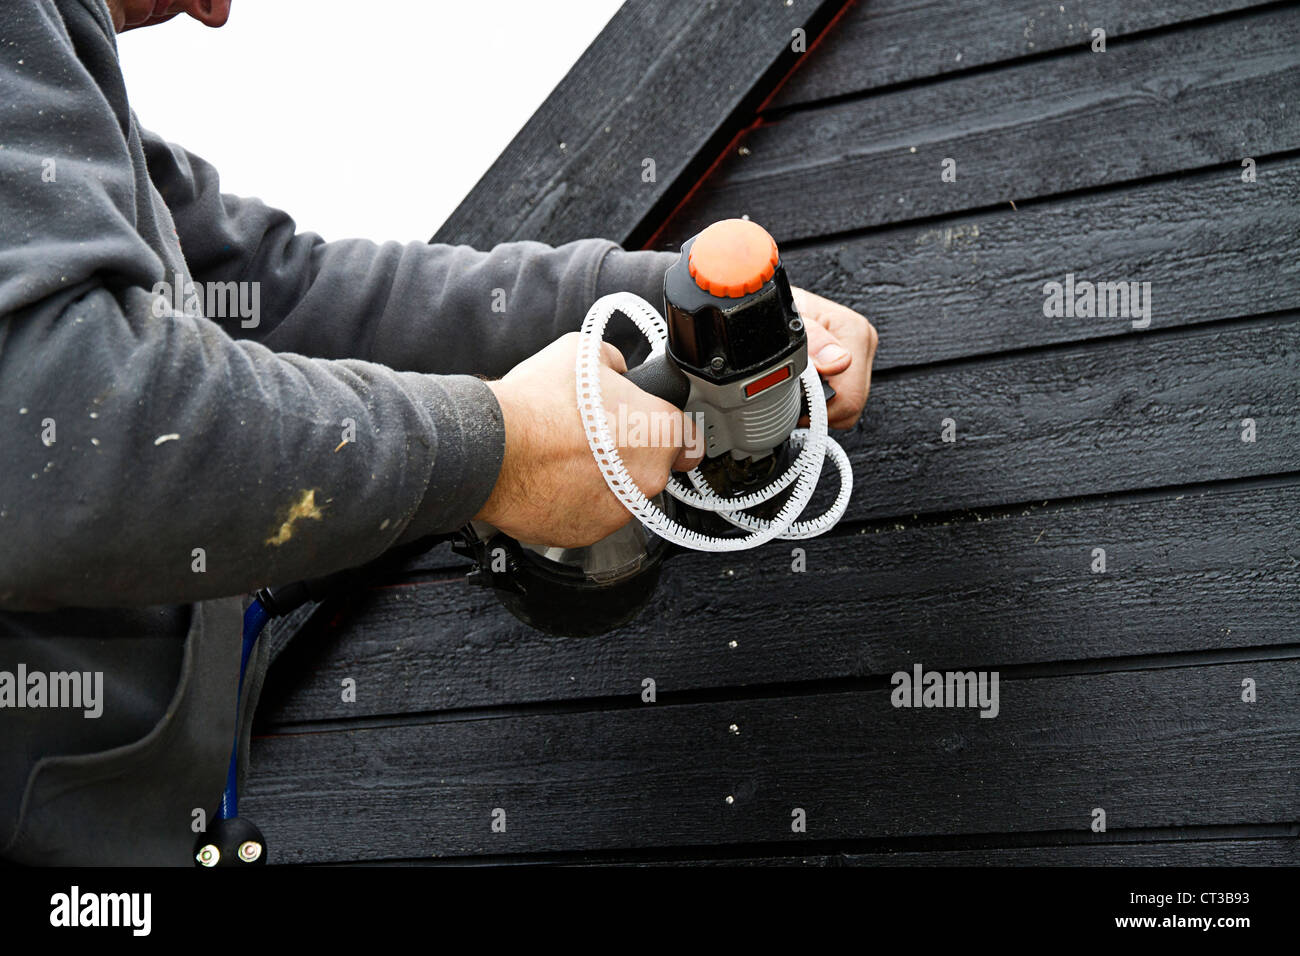 Builder at work on new structure - Stock Image